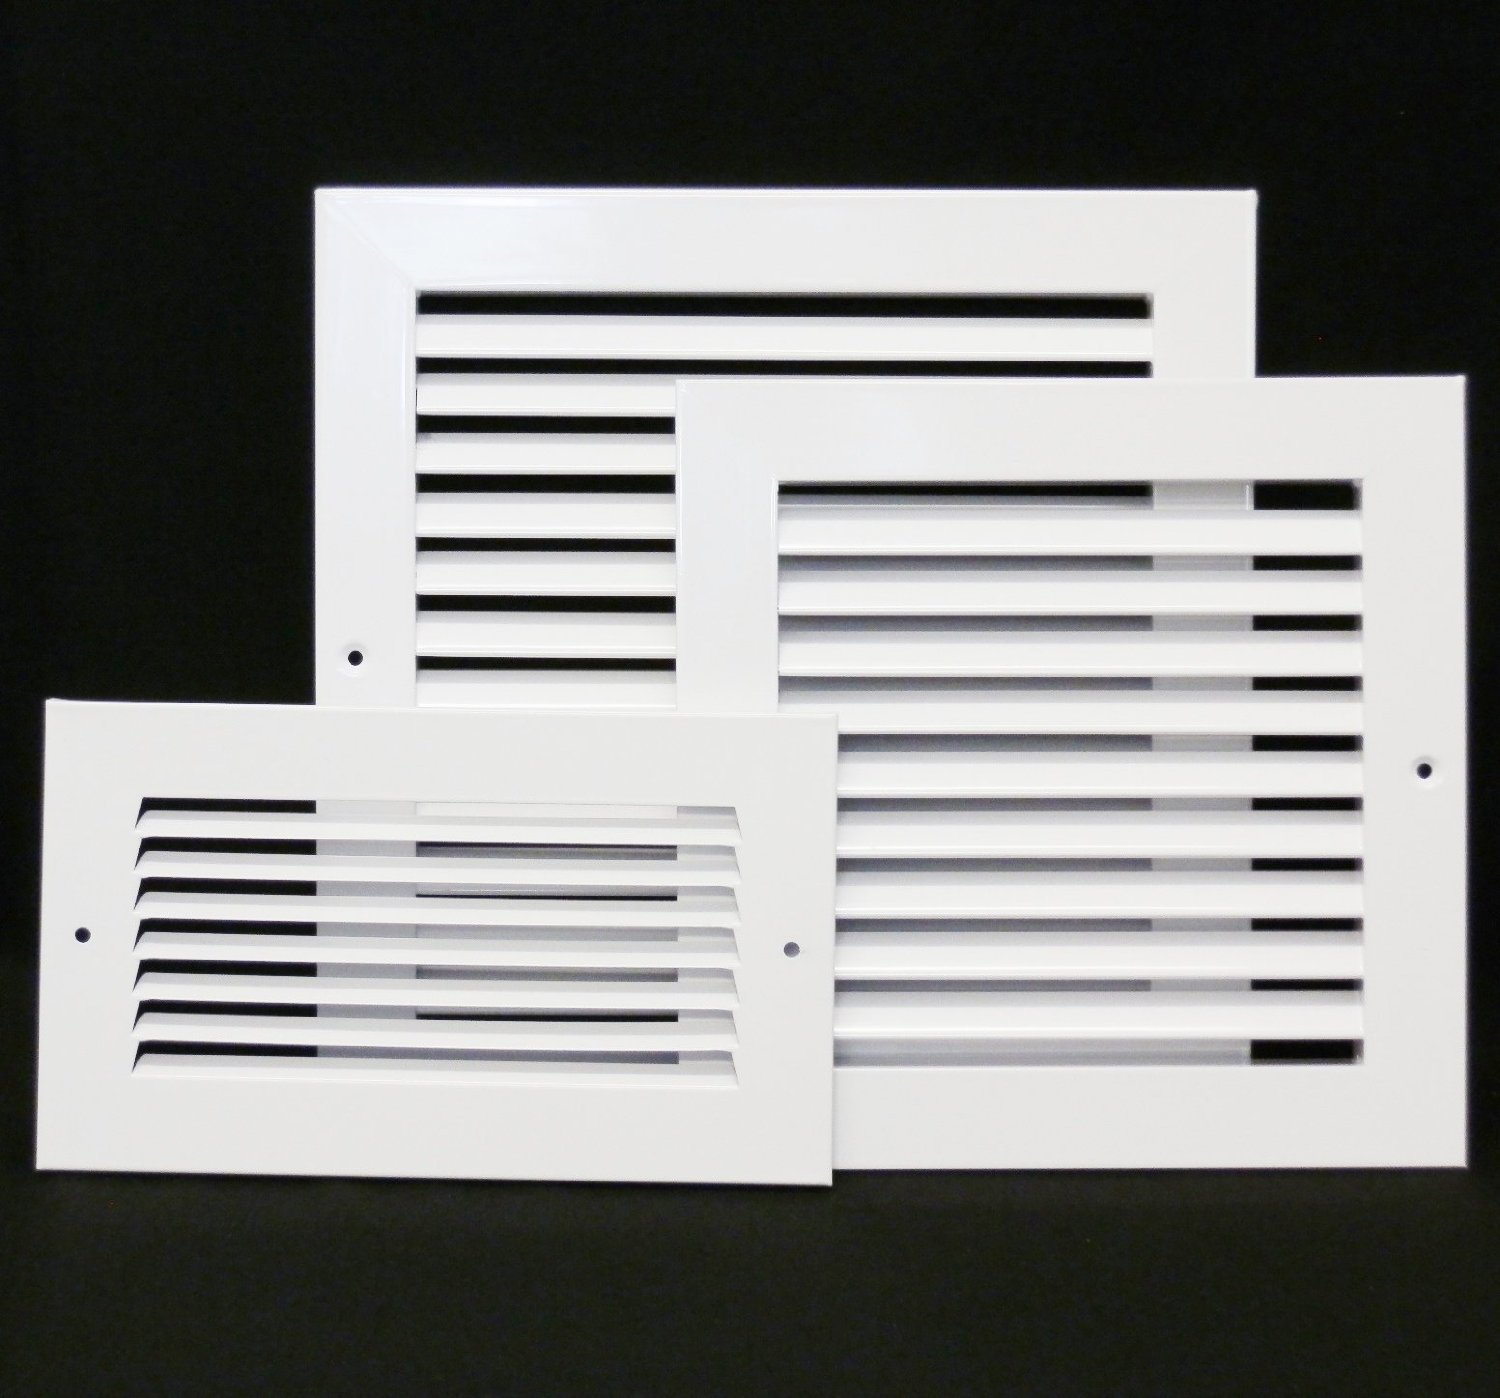 30'' X 14 Steel Return Air Filter Grille for 1'' Filter - Removable Face/Door - HVAC DUCT COVER - Flat Stamped Face - White [Outer Dimensions: 32.5''w X 16.5''h] by HVAC Premium (Image #5)